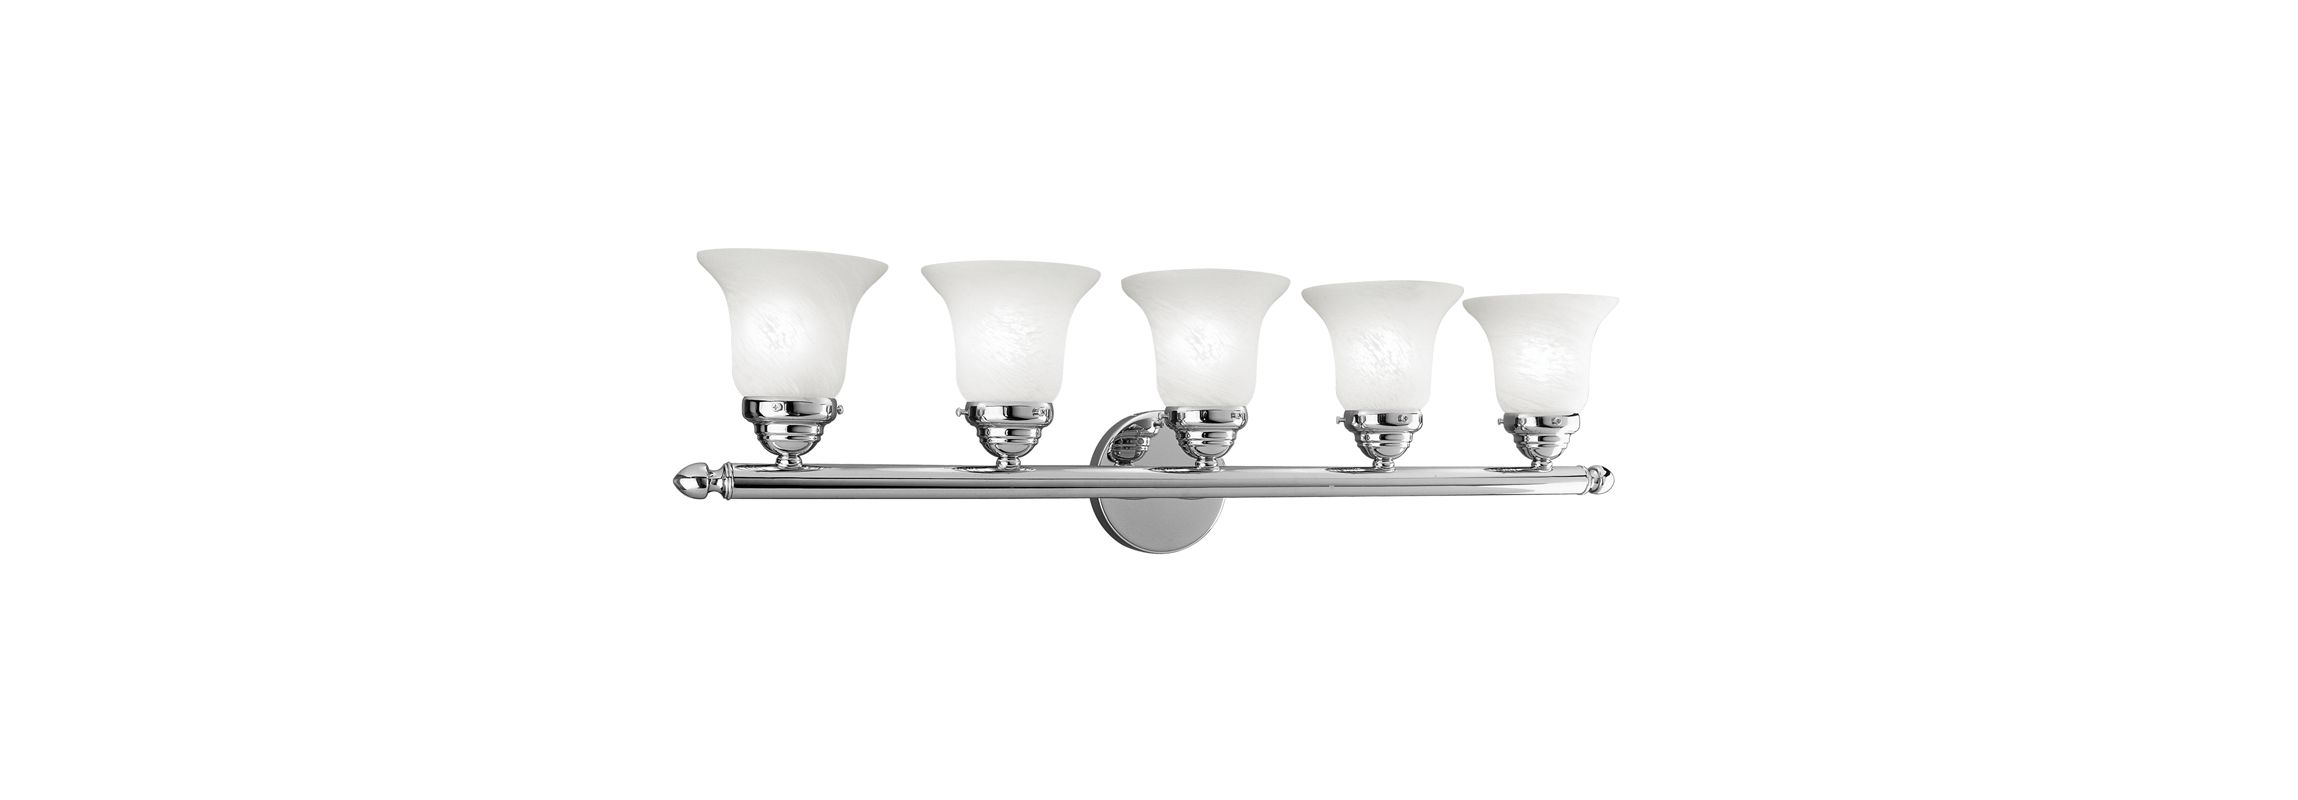 Livex Lighting 1065P Neptune 5 Light Bathroom Vanity Light Chrome